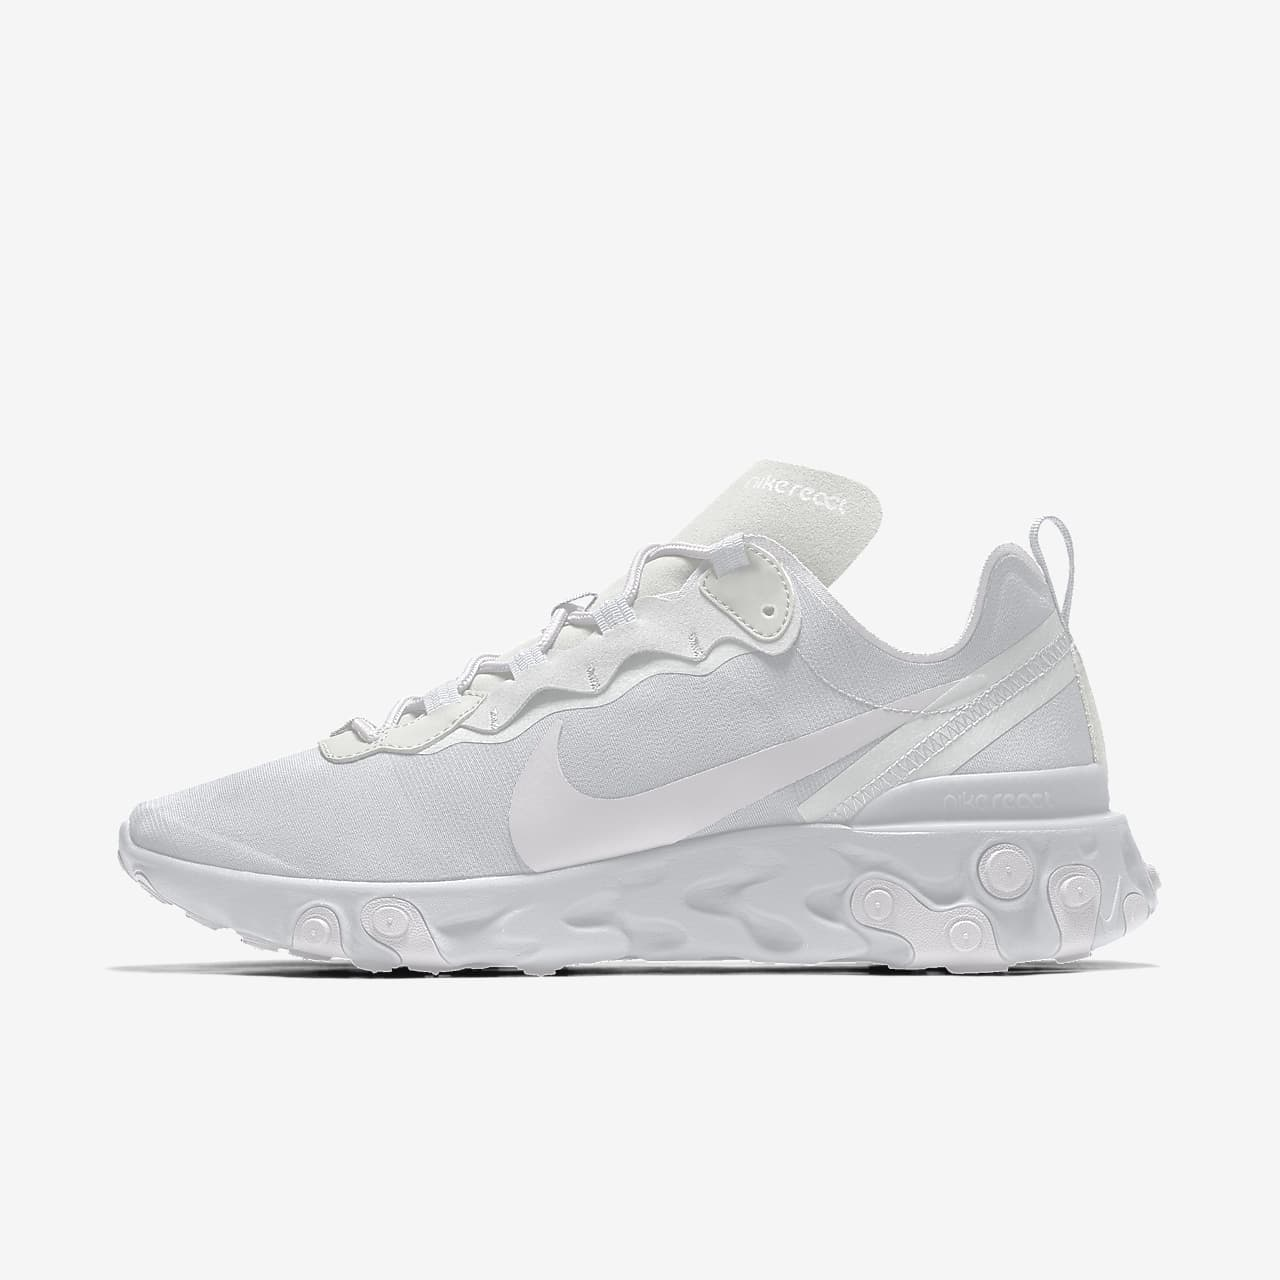 Nike React Element 55 By You Zapatillas de lifestyle personalizables - Mujer